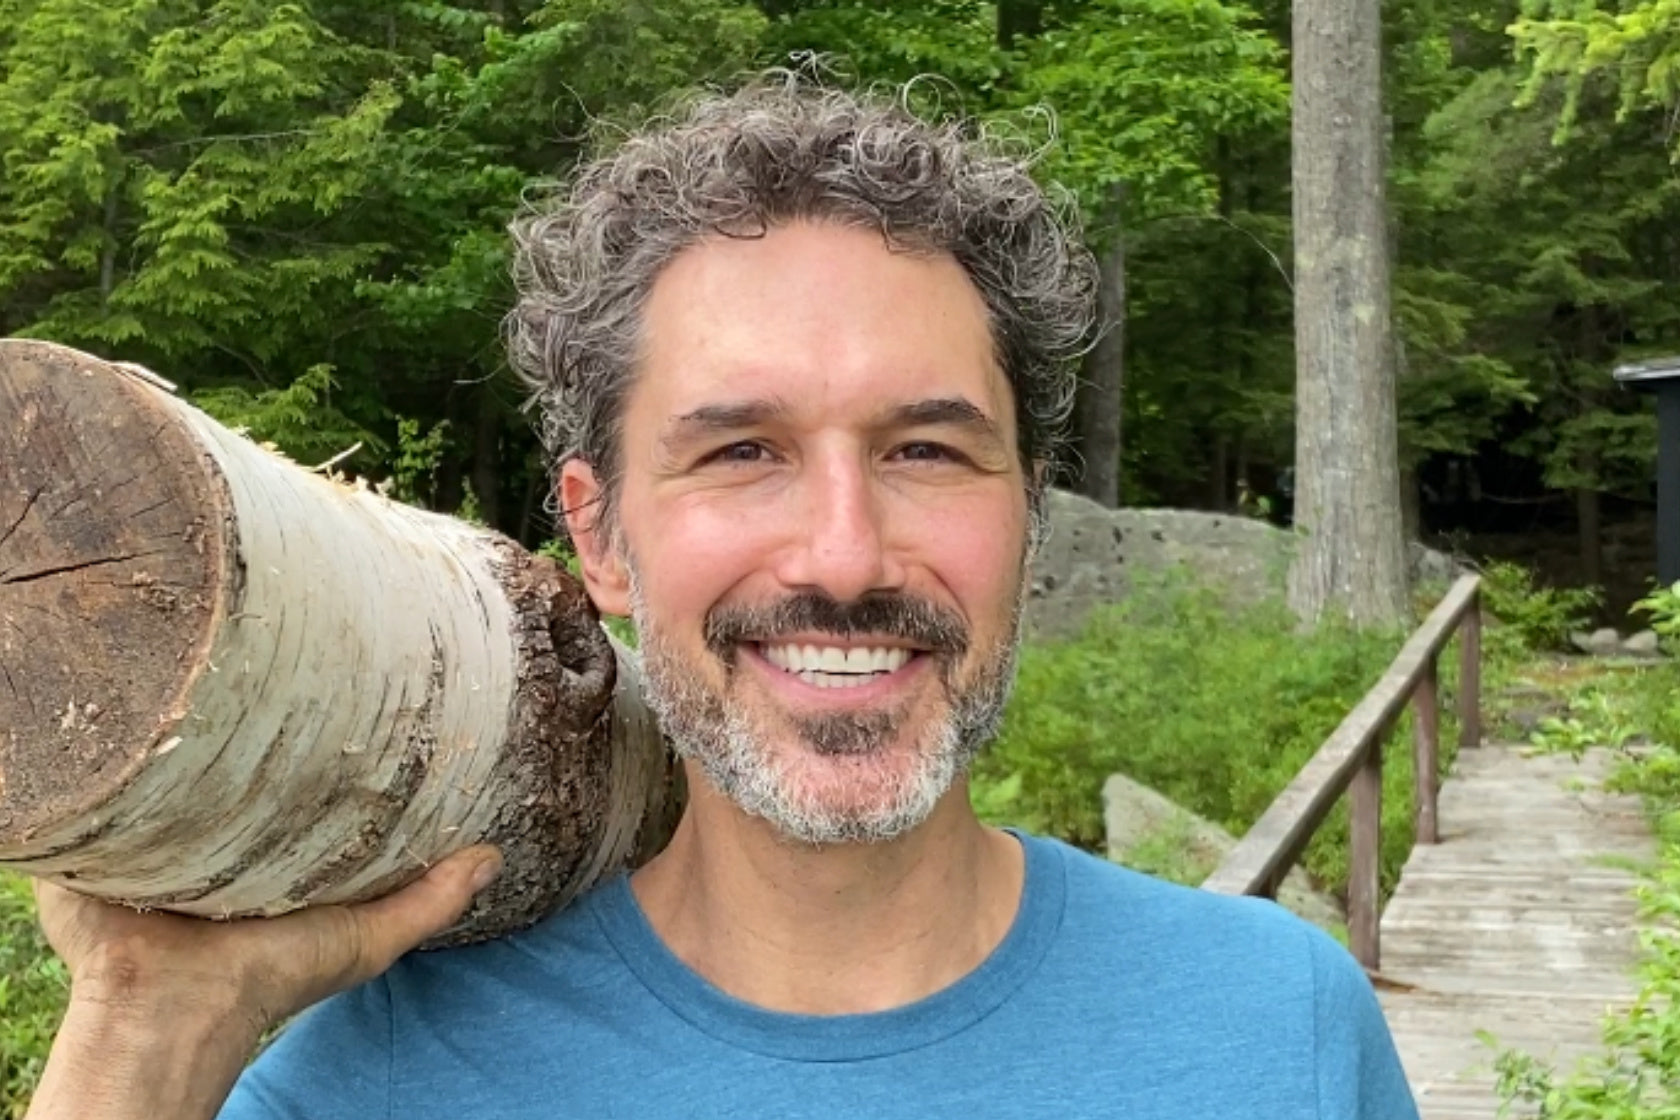 SOLD OUT - June 18th, 2020: Online Game Night with Ethan Zohn Experience